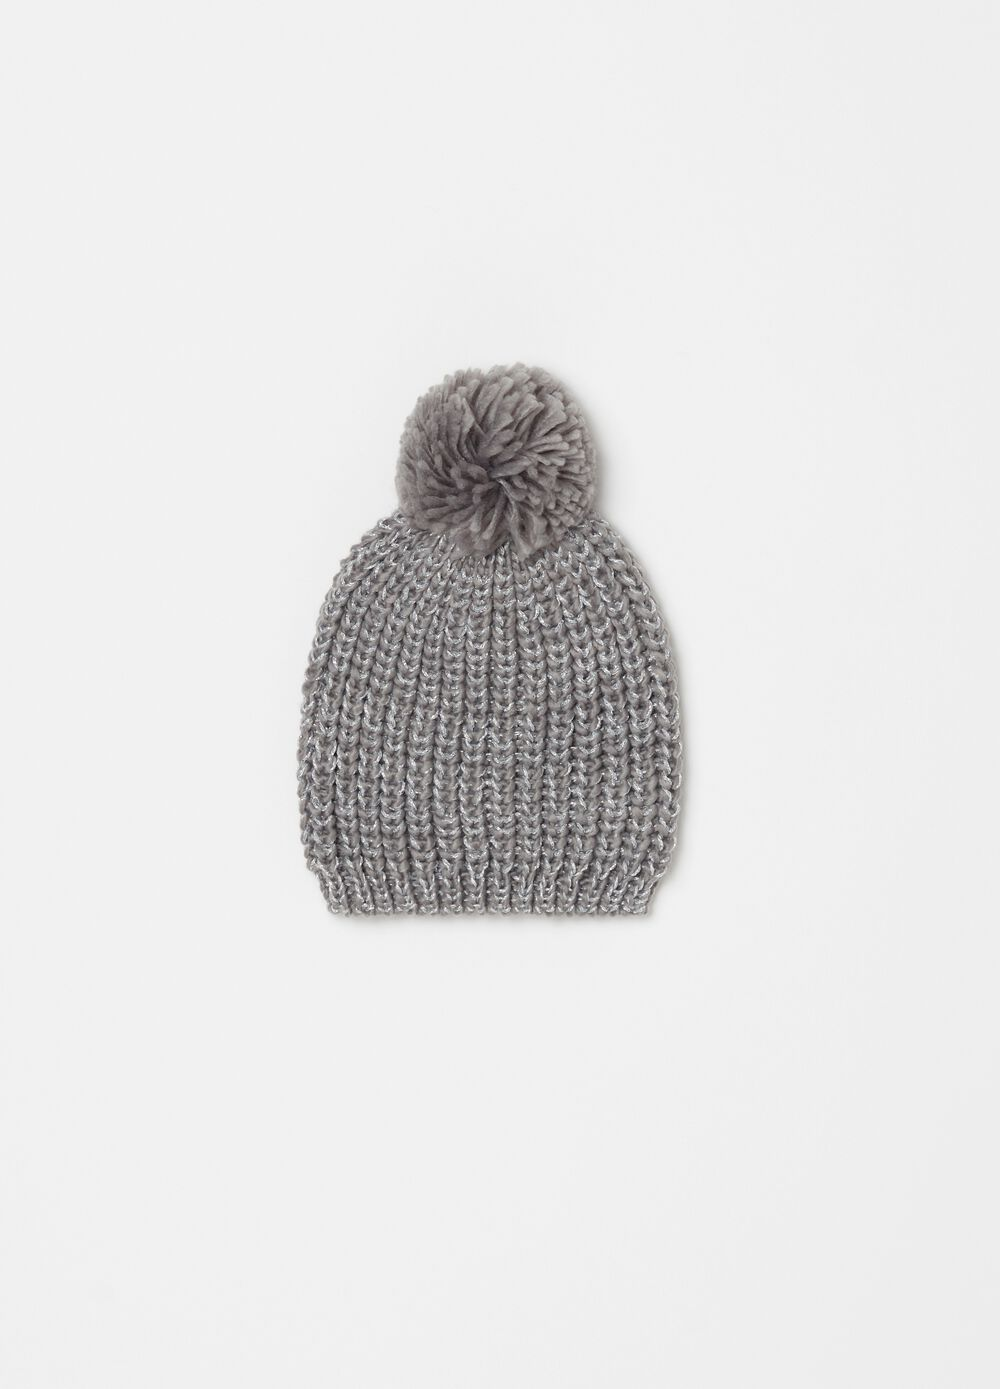 Knit beanie cap with lurex